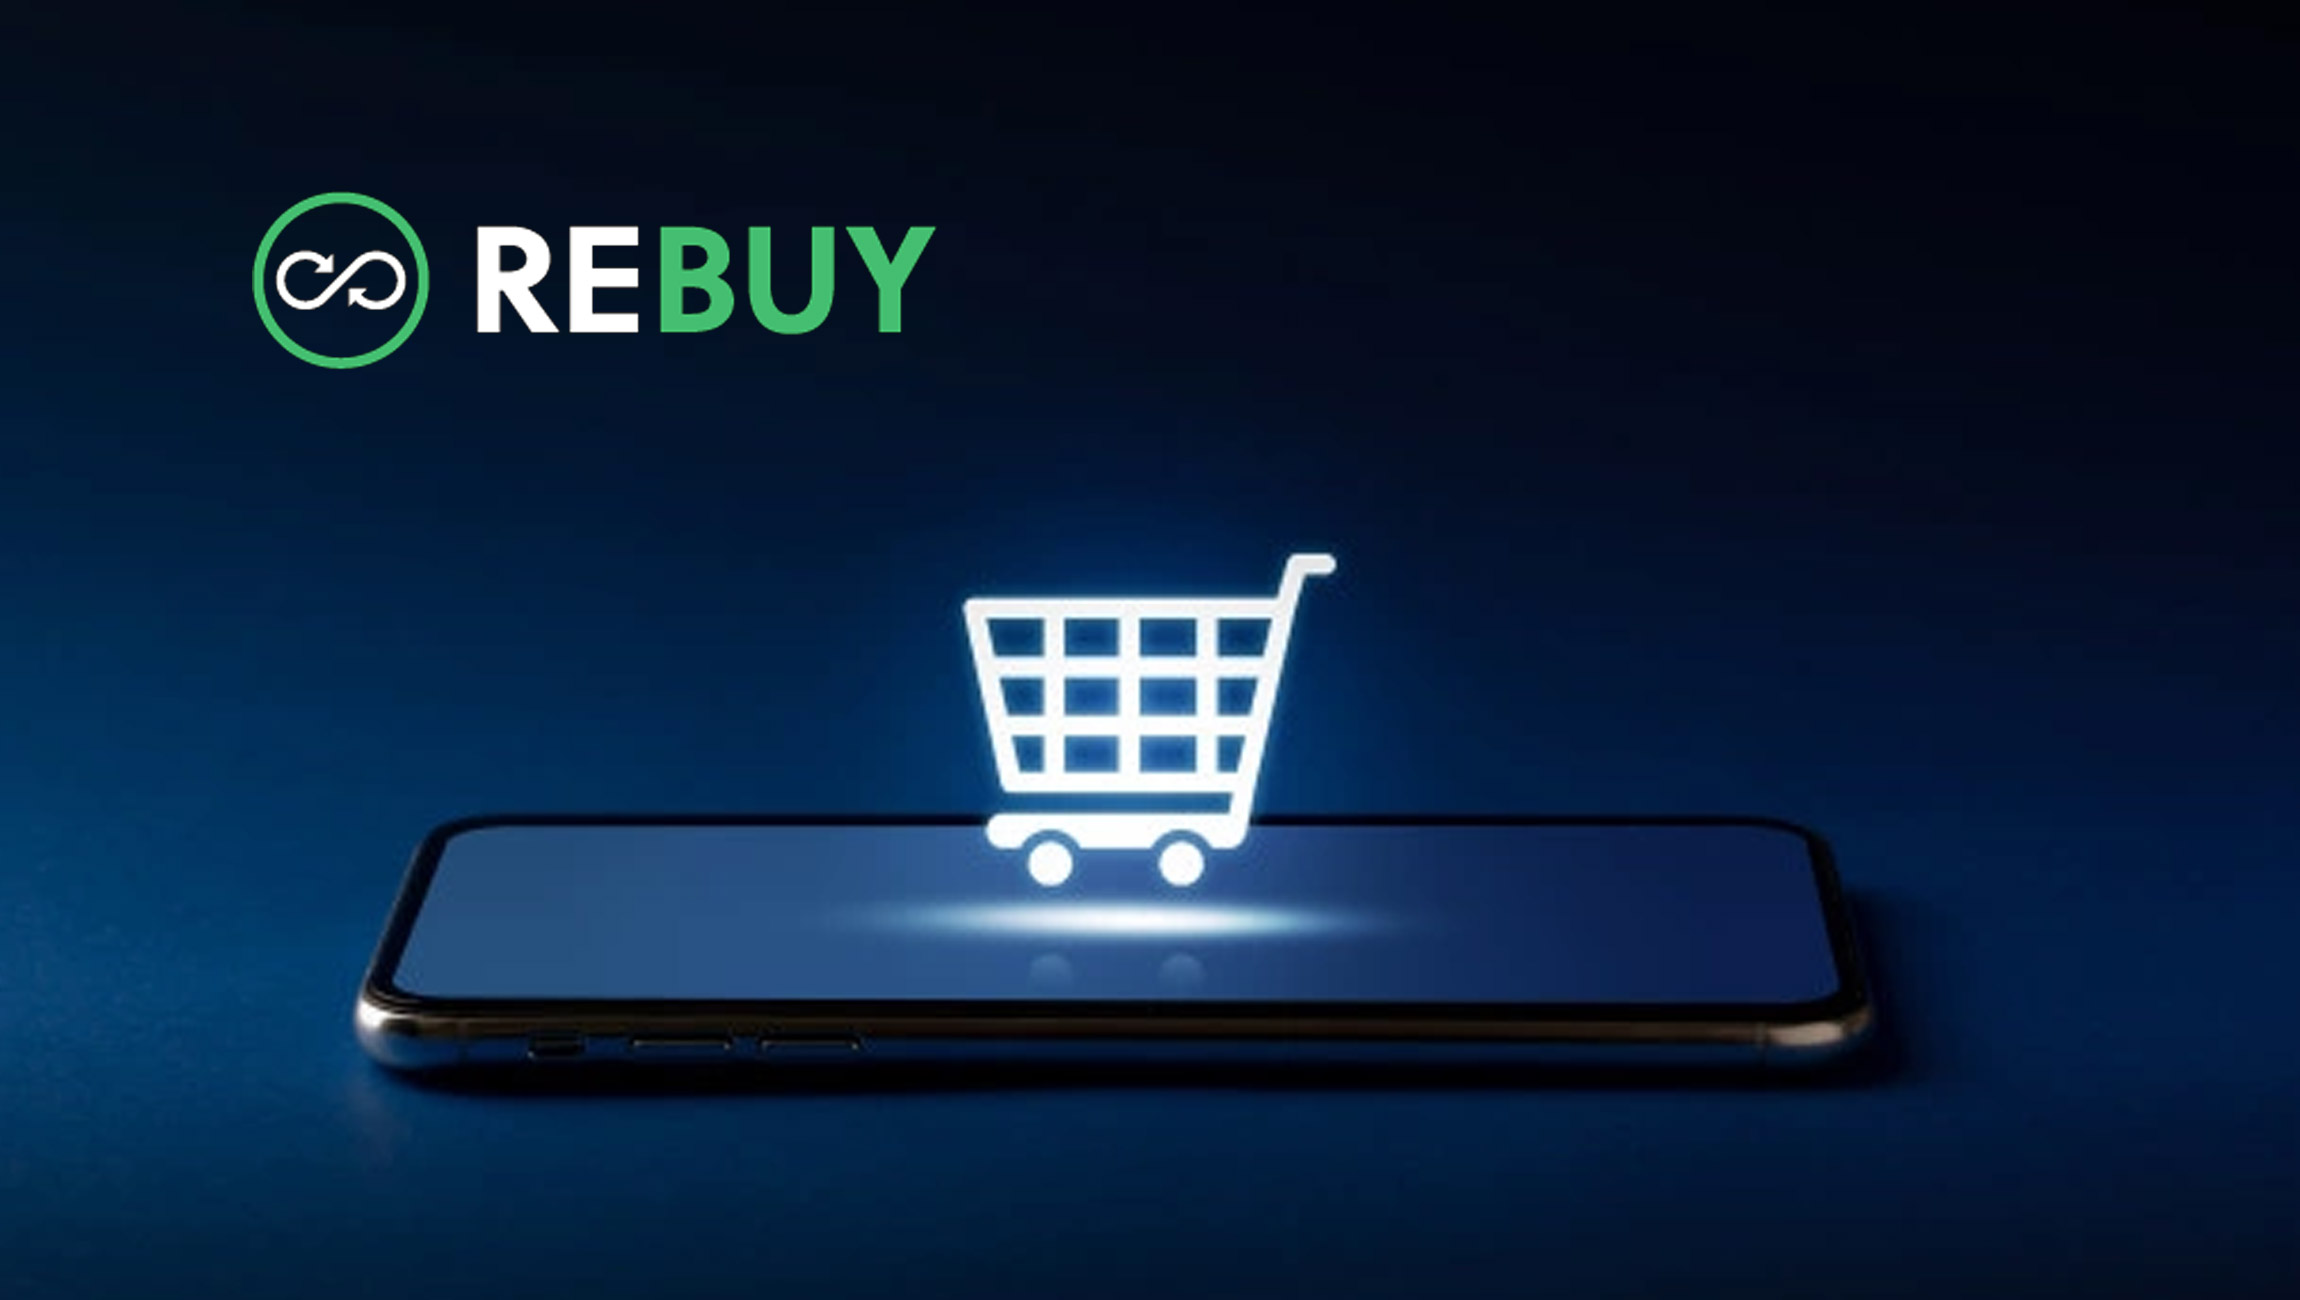 Rebuy Helps E-Commerce Brands On Shopify Supercharge Sales With Omnichannel Personalization